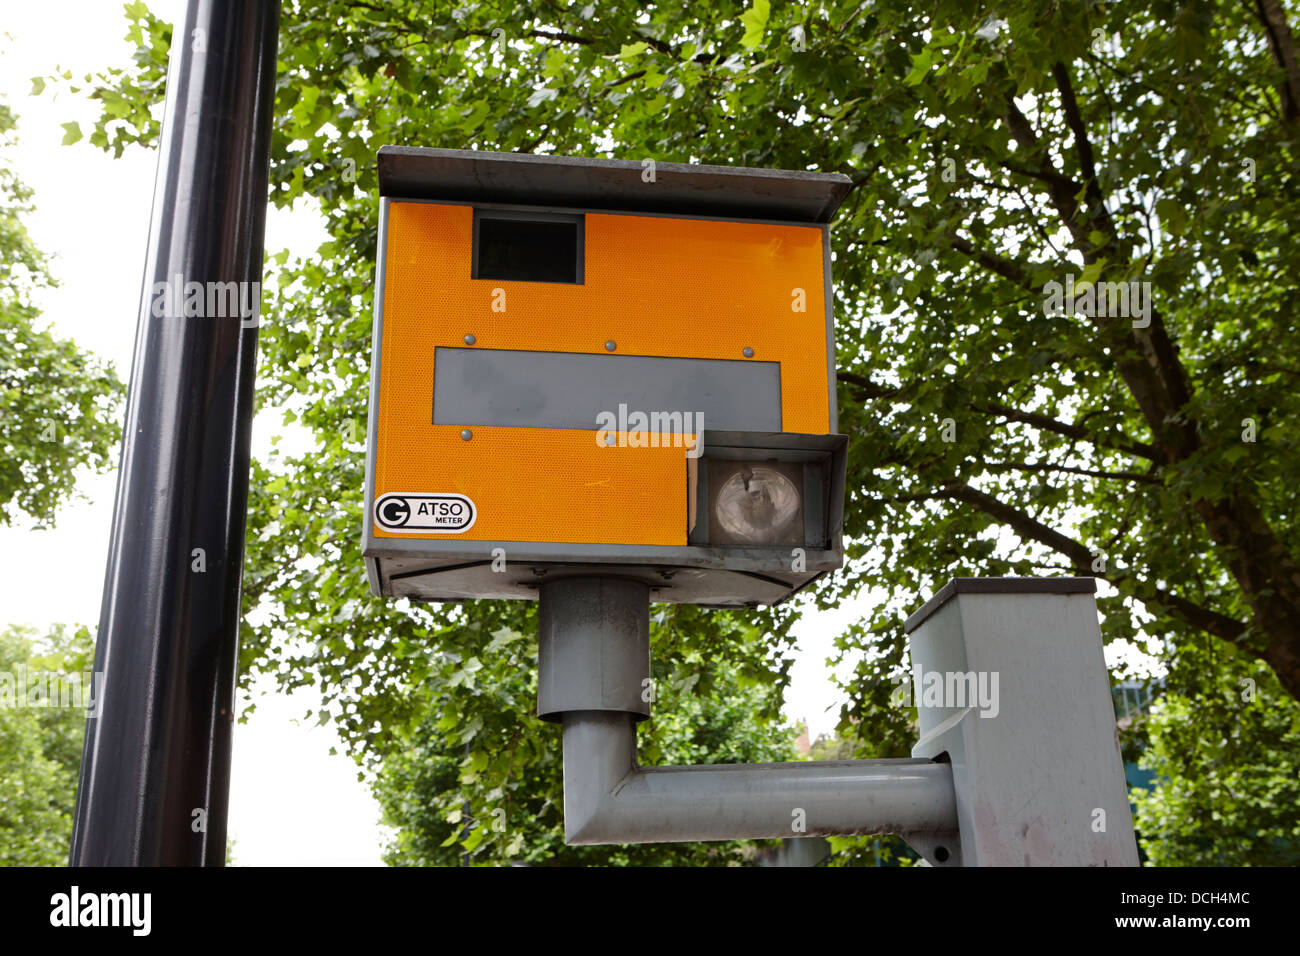 gatso meter speed camera in central London England UK - Stock Image